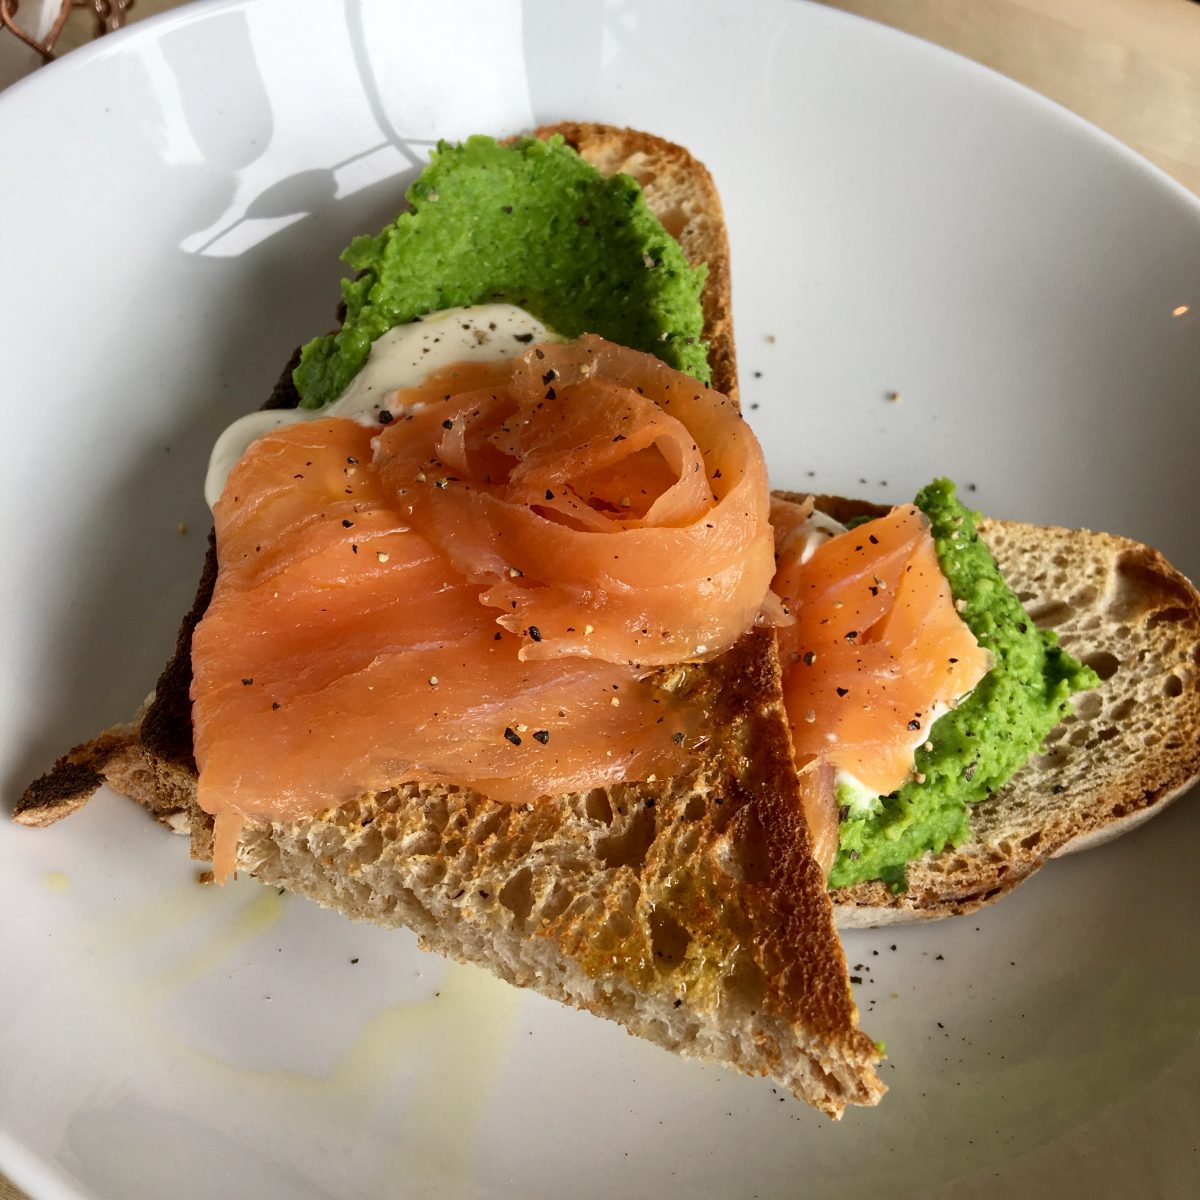 Spurtle & Spoon Smoked Salmon, Pea Puree, Lemon and Pepper Creme Fraiche Sourdough Toast Image Credit Bitten Oxford bittenoxford.co.uk